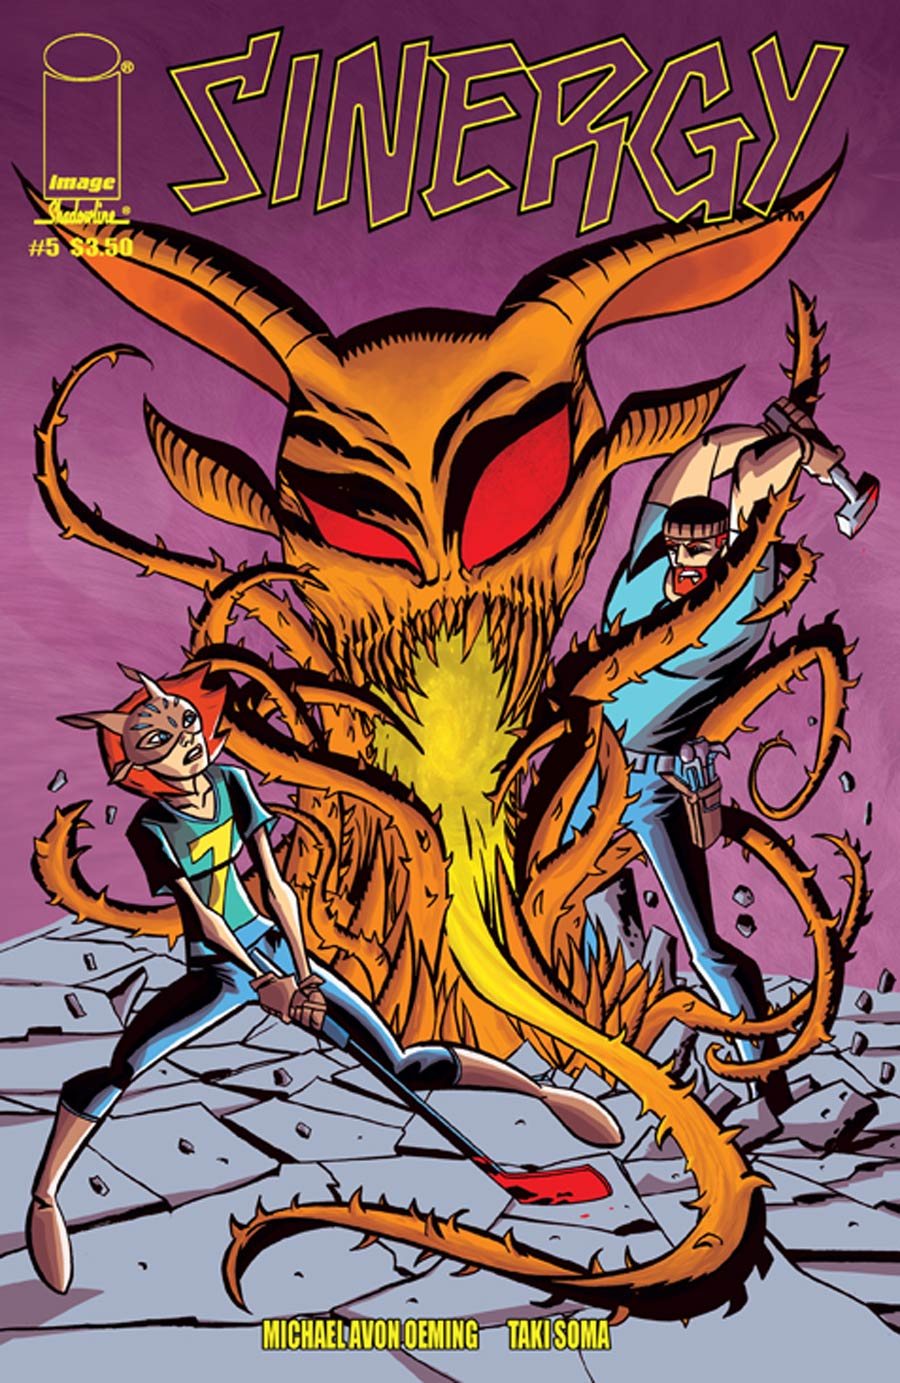 Sinergy #5 Cover A Michael Avon Oeming